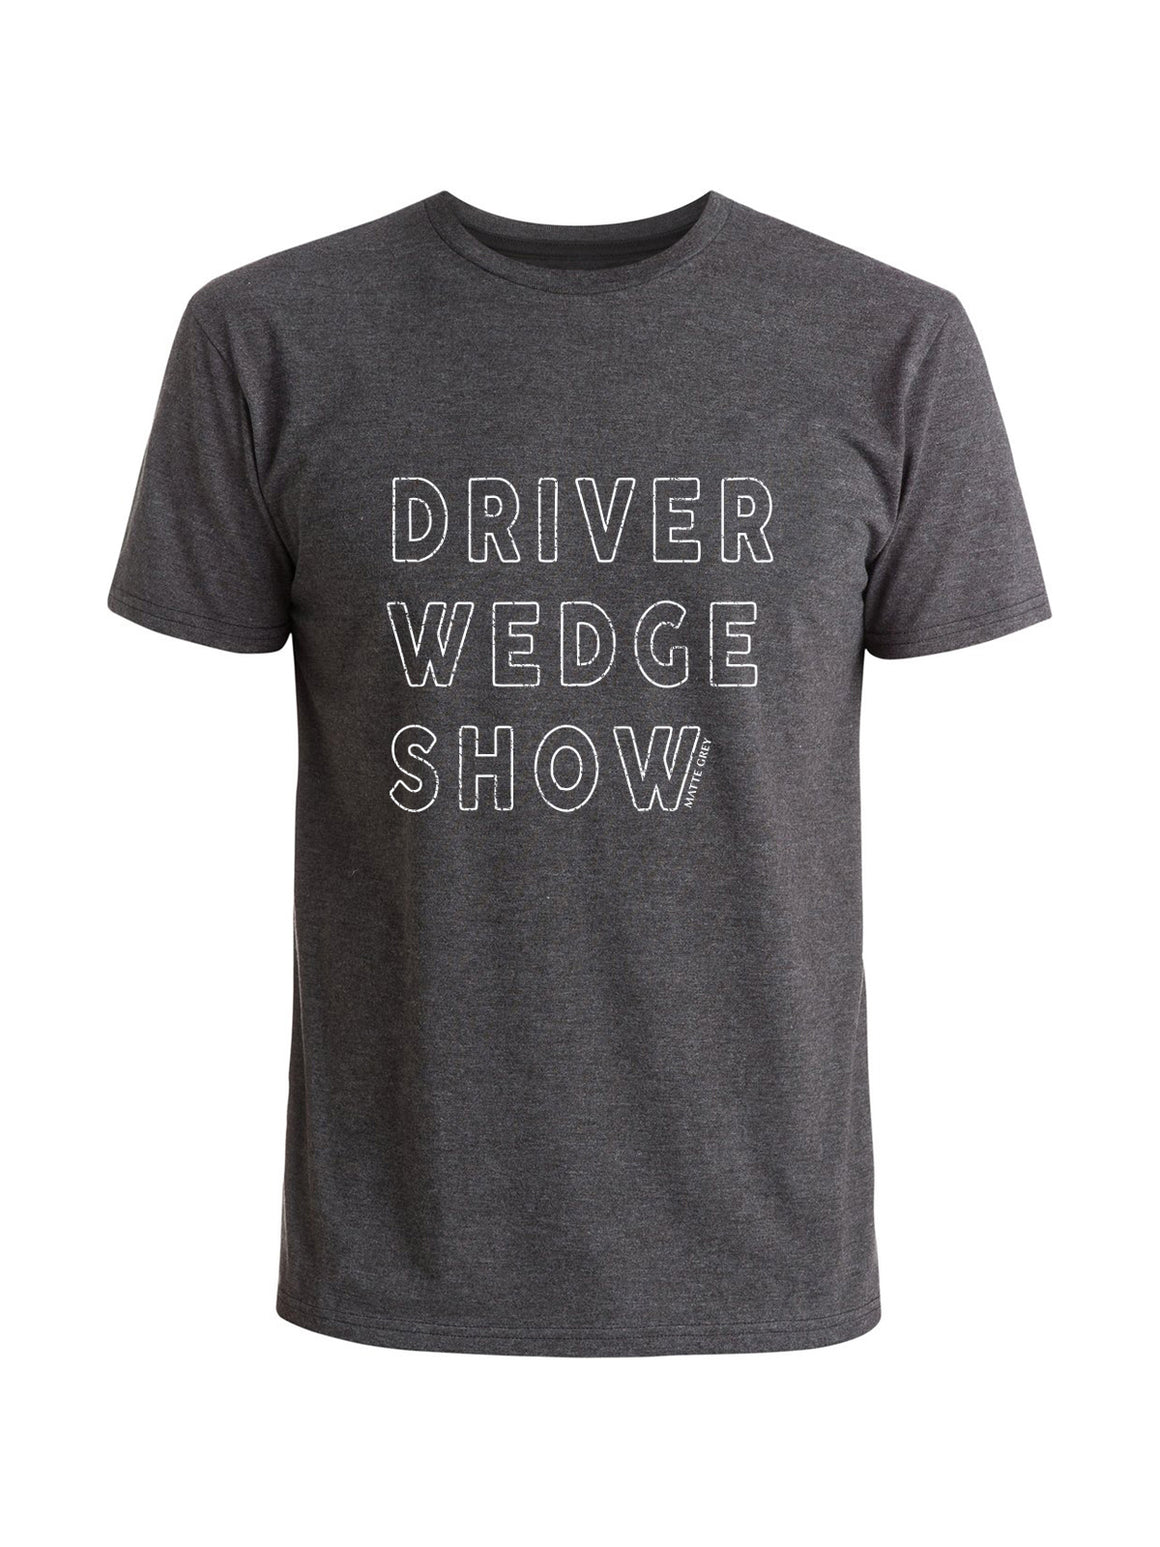 Driver Wedge Show Tee - Charcoal Heather